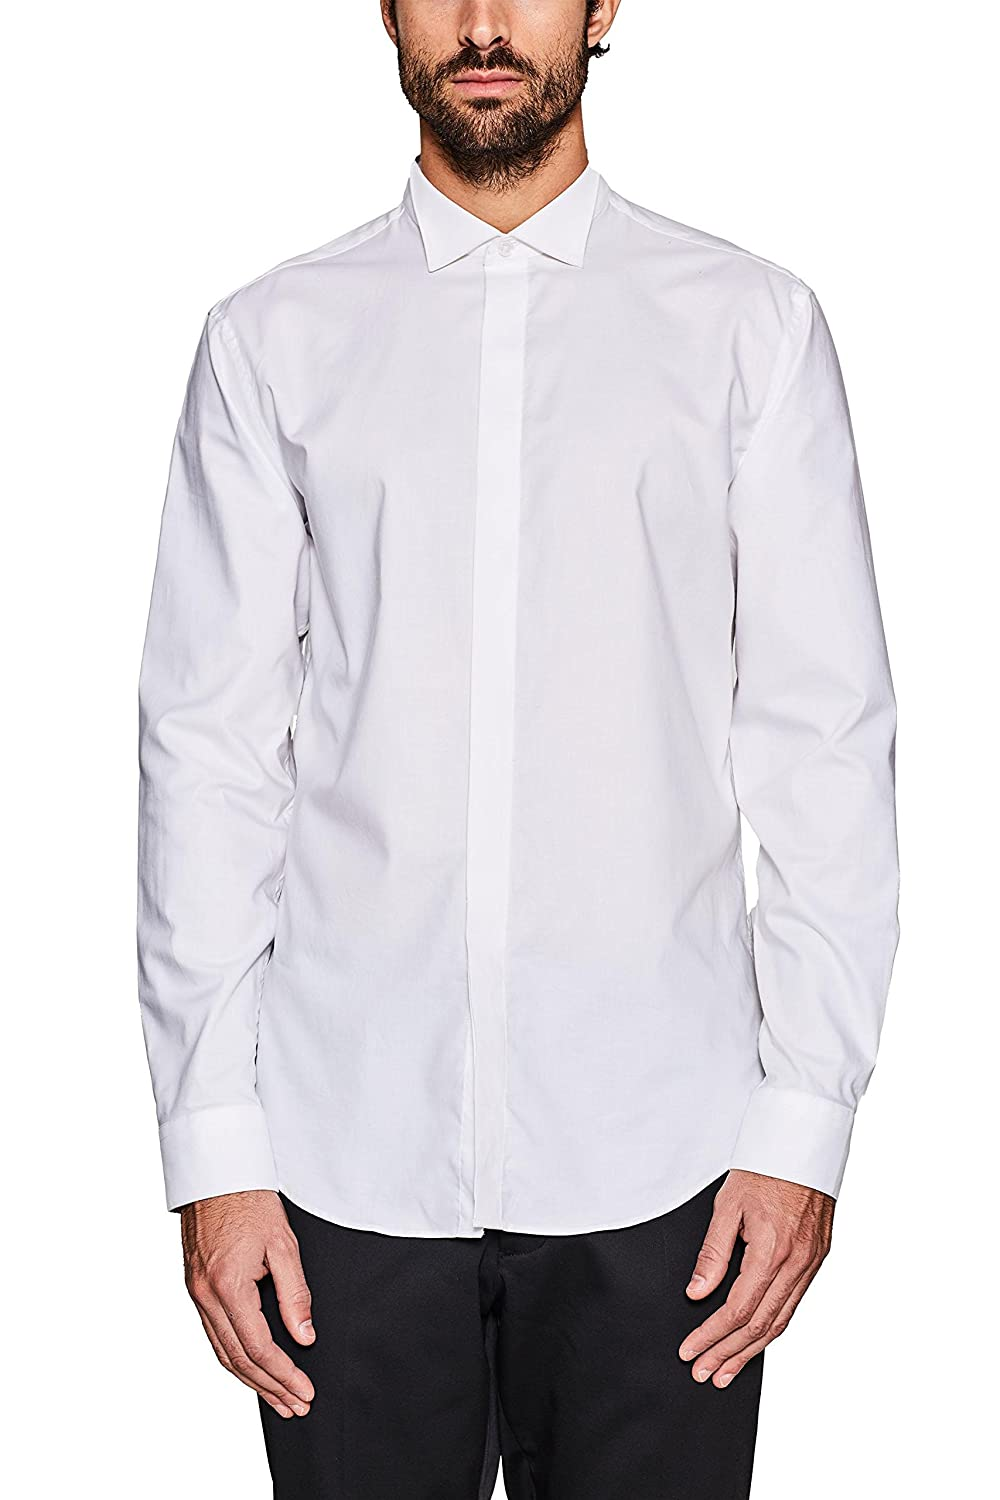 ESPRIT Collection, Camisa para Hombre